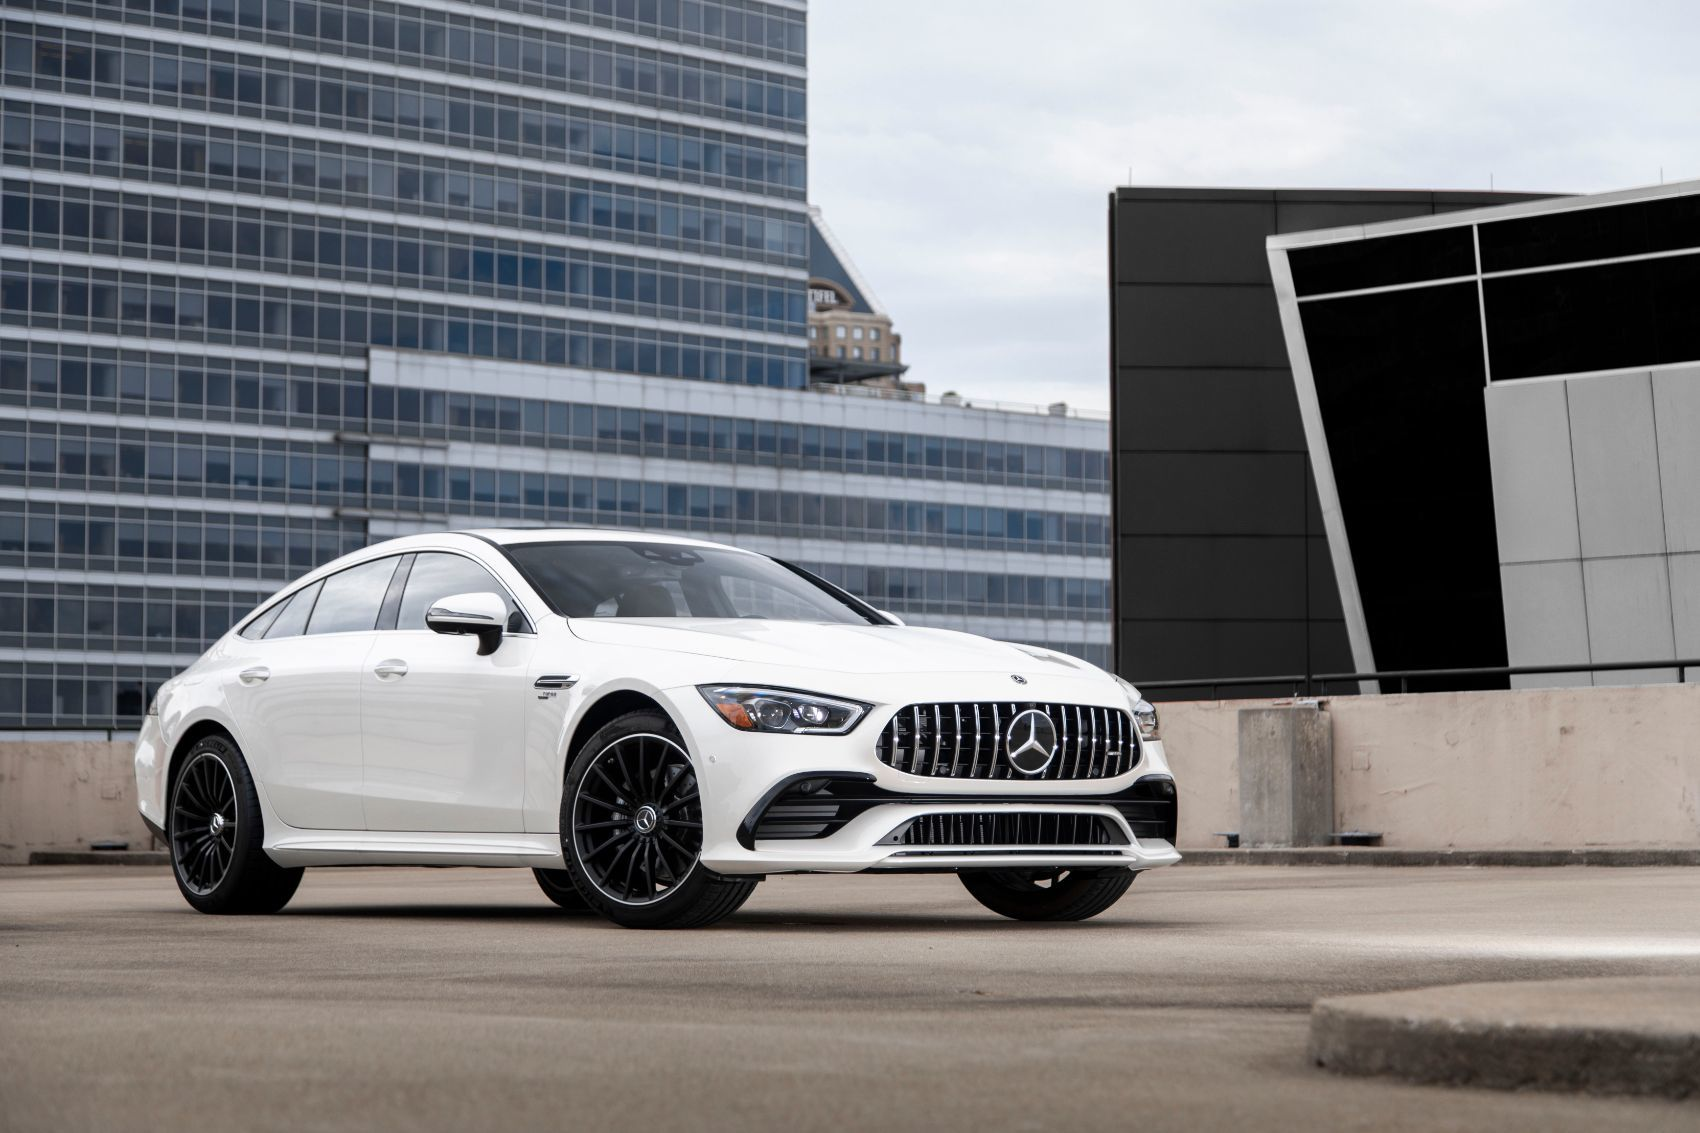 2021 Mercedes-AMG GT 43 4-Door Coupe: Have Your Cake & Eat ...